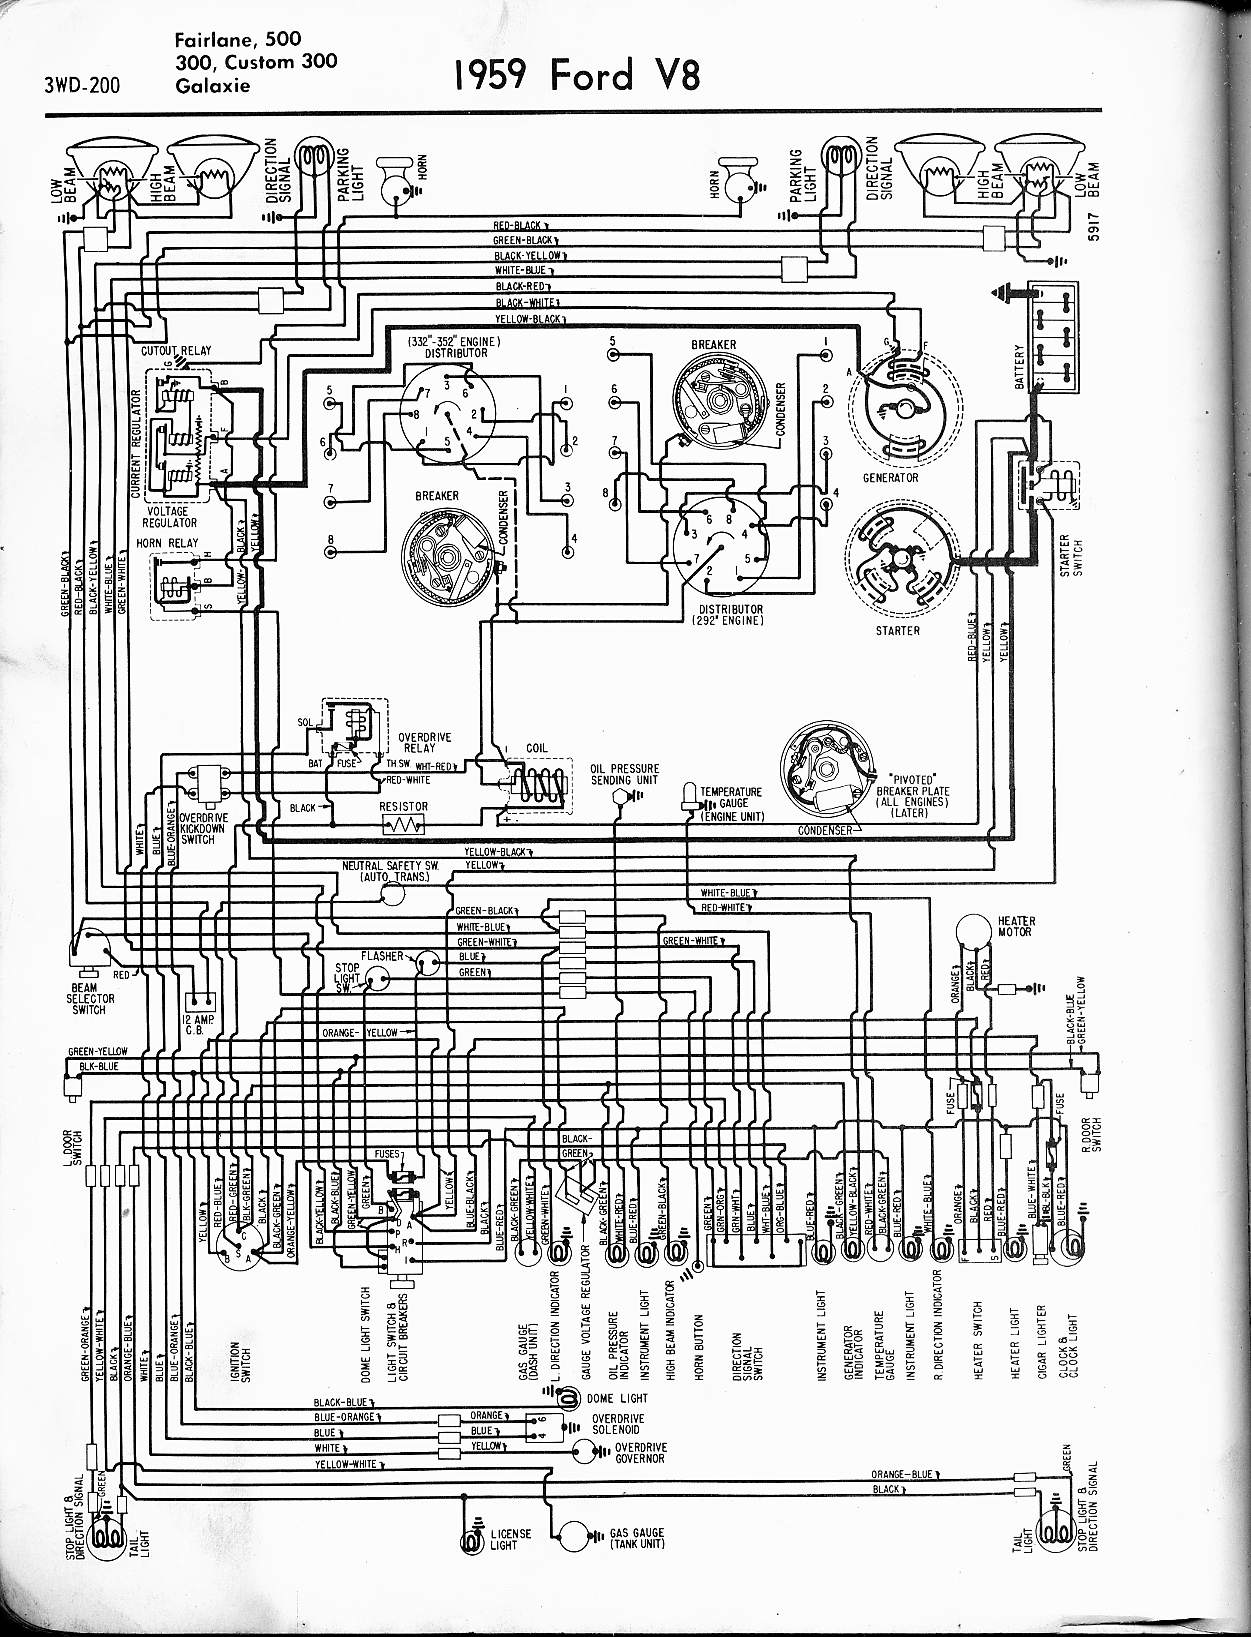 57 65 ford wiring diagrams 1957 thunderbird wiring diagram 1958 ford fairlane wiring diagram